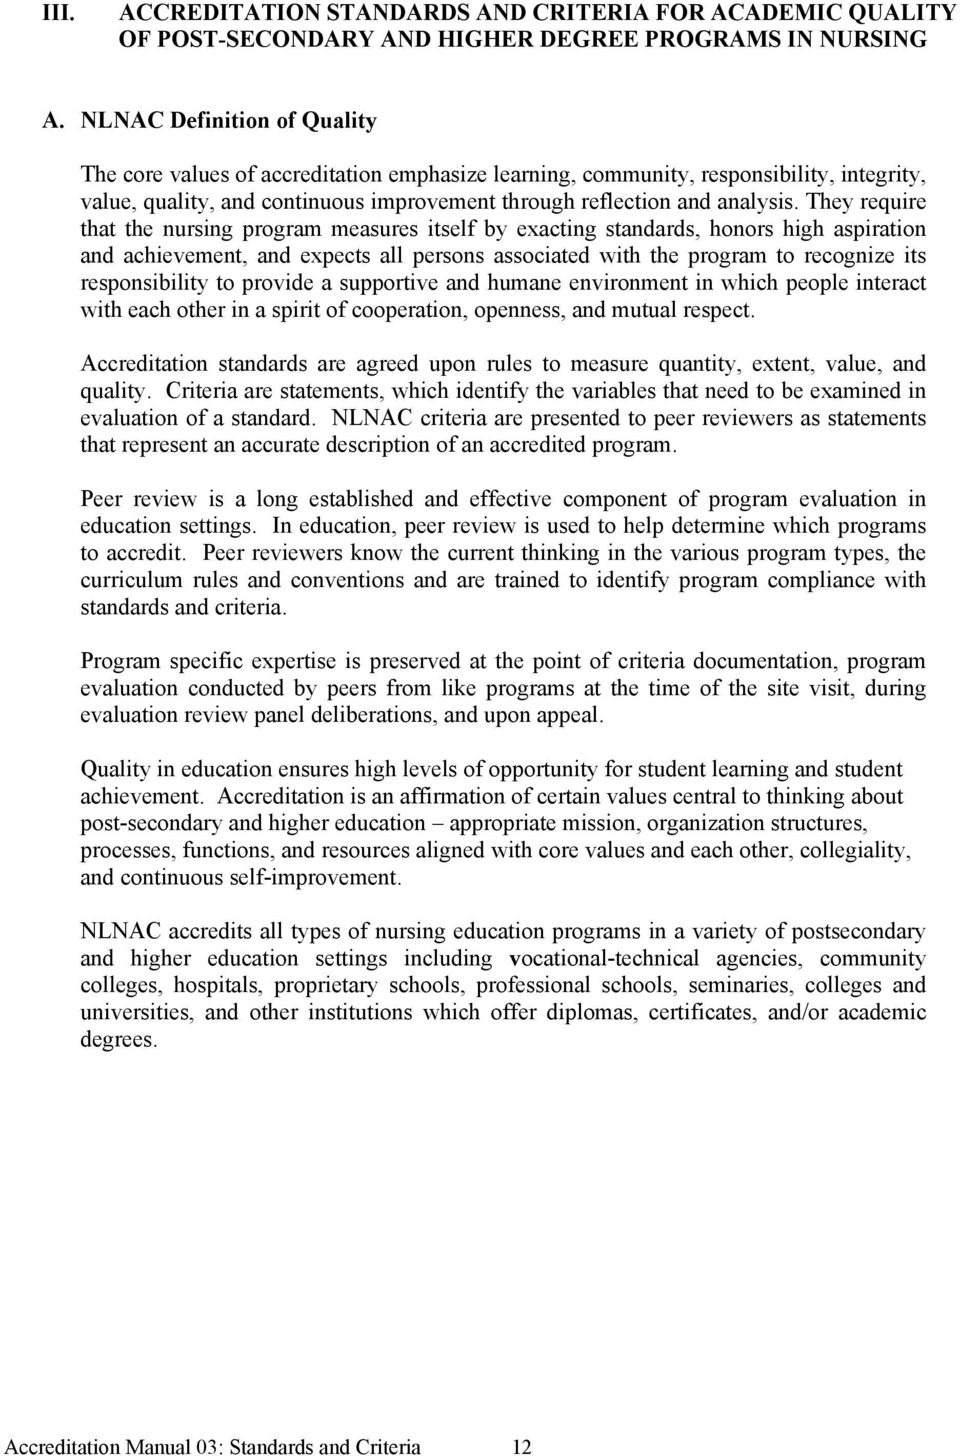 ACCREDITATION STANDARDS AND CRITERIA FOR ACADEMIC QUALITY OF POST